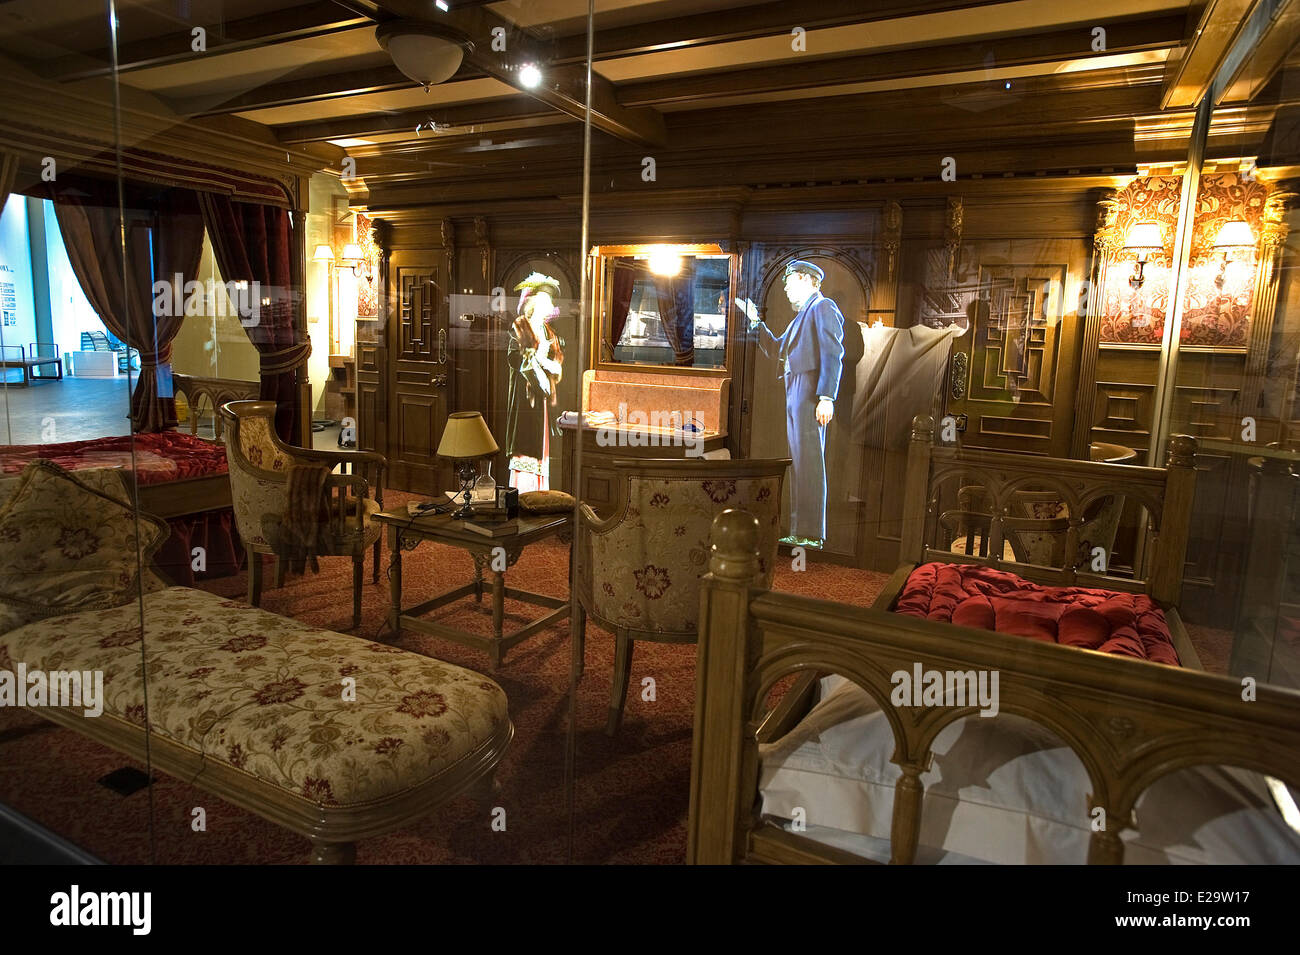 United Kingdom, Northern Ireland, Belfast, the Titanic Belfast museum, 1st class cabin with audio visual representations - Stock Image